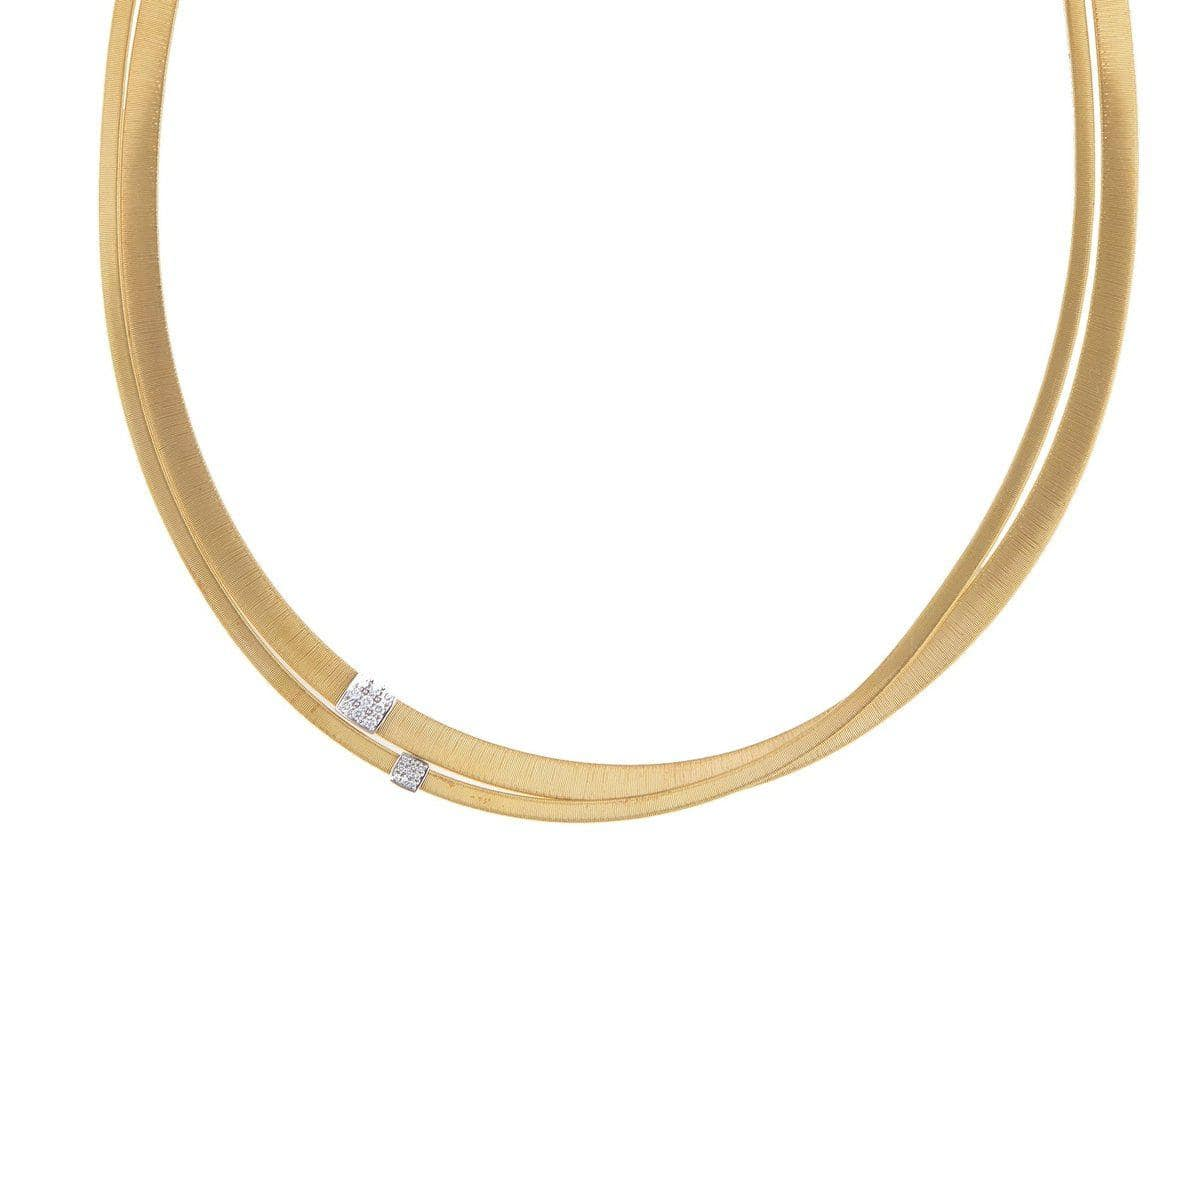 18K Masai Necklace - CG738 B YW 16.5""